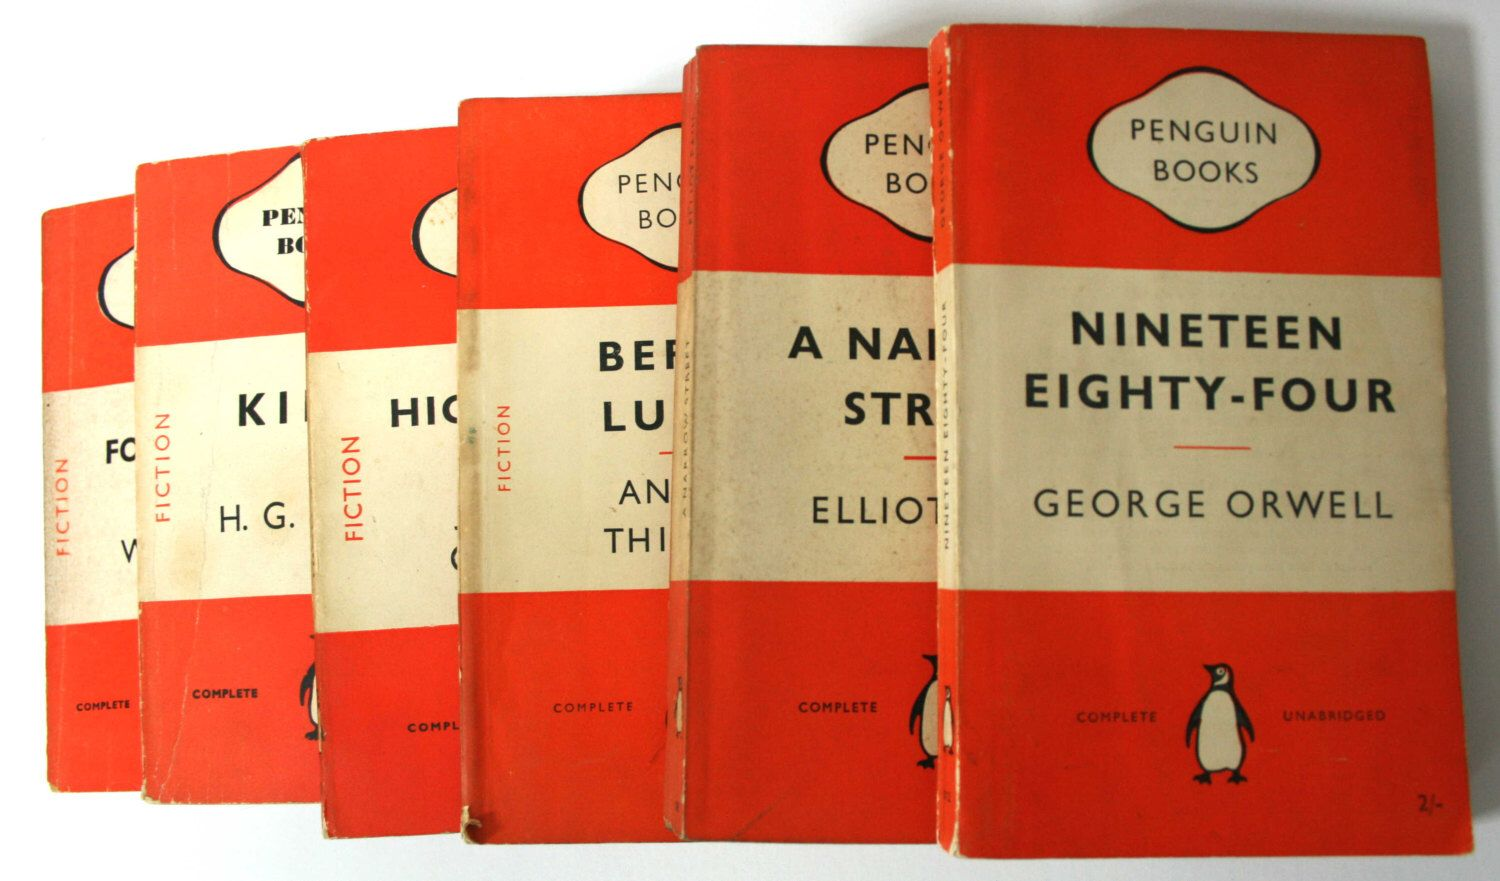 1000 Decorative Vintage Penguin paperbacks - Pallet of books by WorldofRareBooks on Etsy https://www.etsy.com/listing/188810299/1000-decorative-vintage-penguin